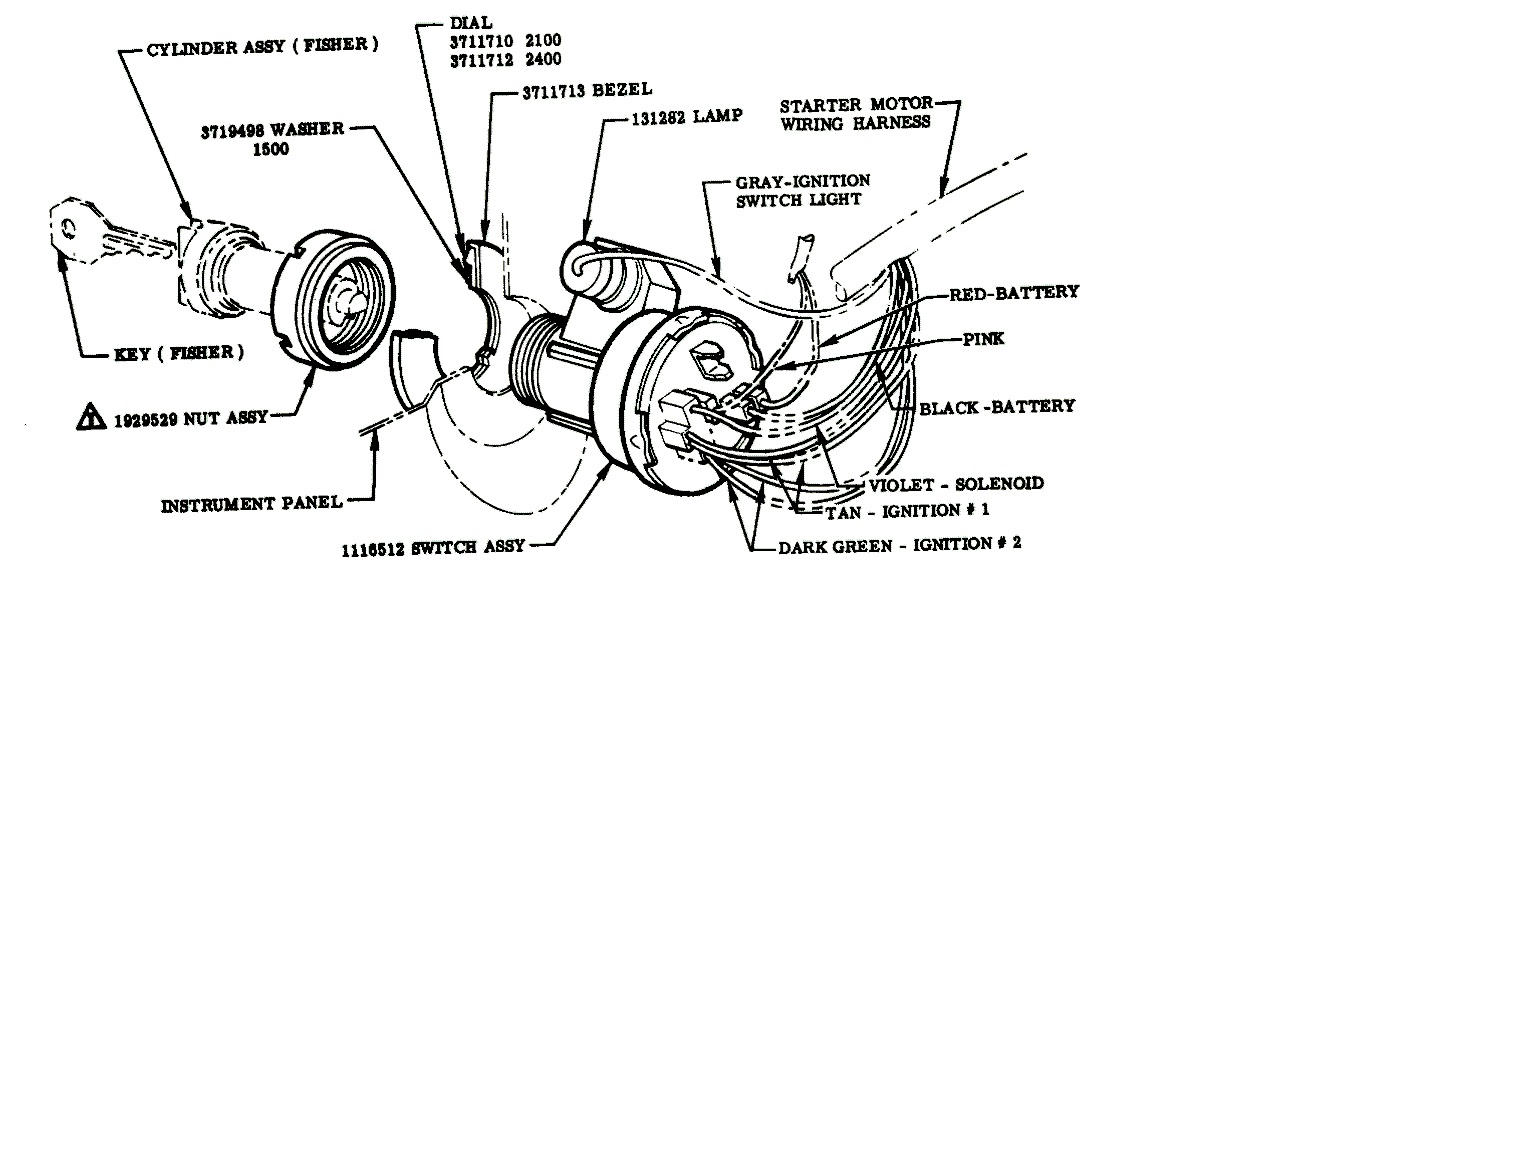 Chevrolet Corvette Questions Replace 1975 C3 Blower 2 Answers 1965 also Ignition Switch Wiring Diagram 1955 2 Chevy 3100 besides 1969 Chevy Truck Ignition Wiring Diagram furthermore Showthread likewise 66 77 Bronco High Torque Mini Starter Installation. on 1957 chevy coil wiring diagram